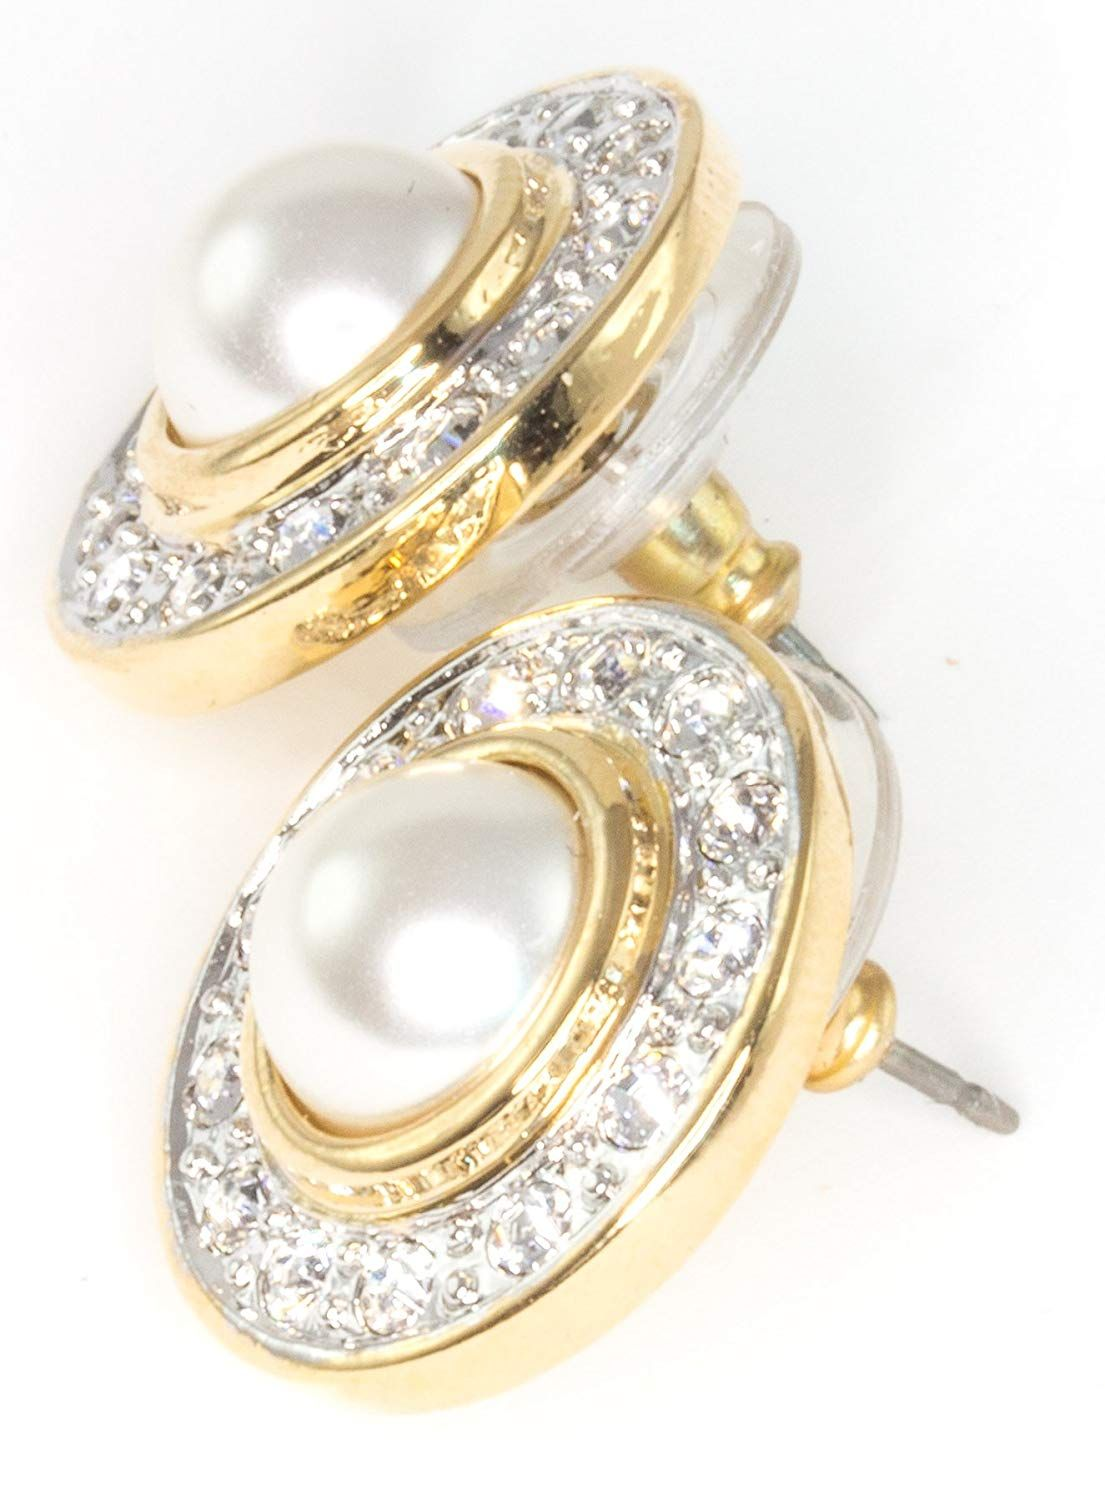 ff18a7074 Queen Alexandra Cluster Earrings - Swarovski Crystal - Licensed by Historic  Royal Palaces, London: Amazon.co.uk: Jewellery